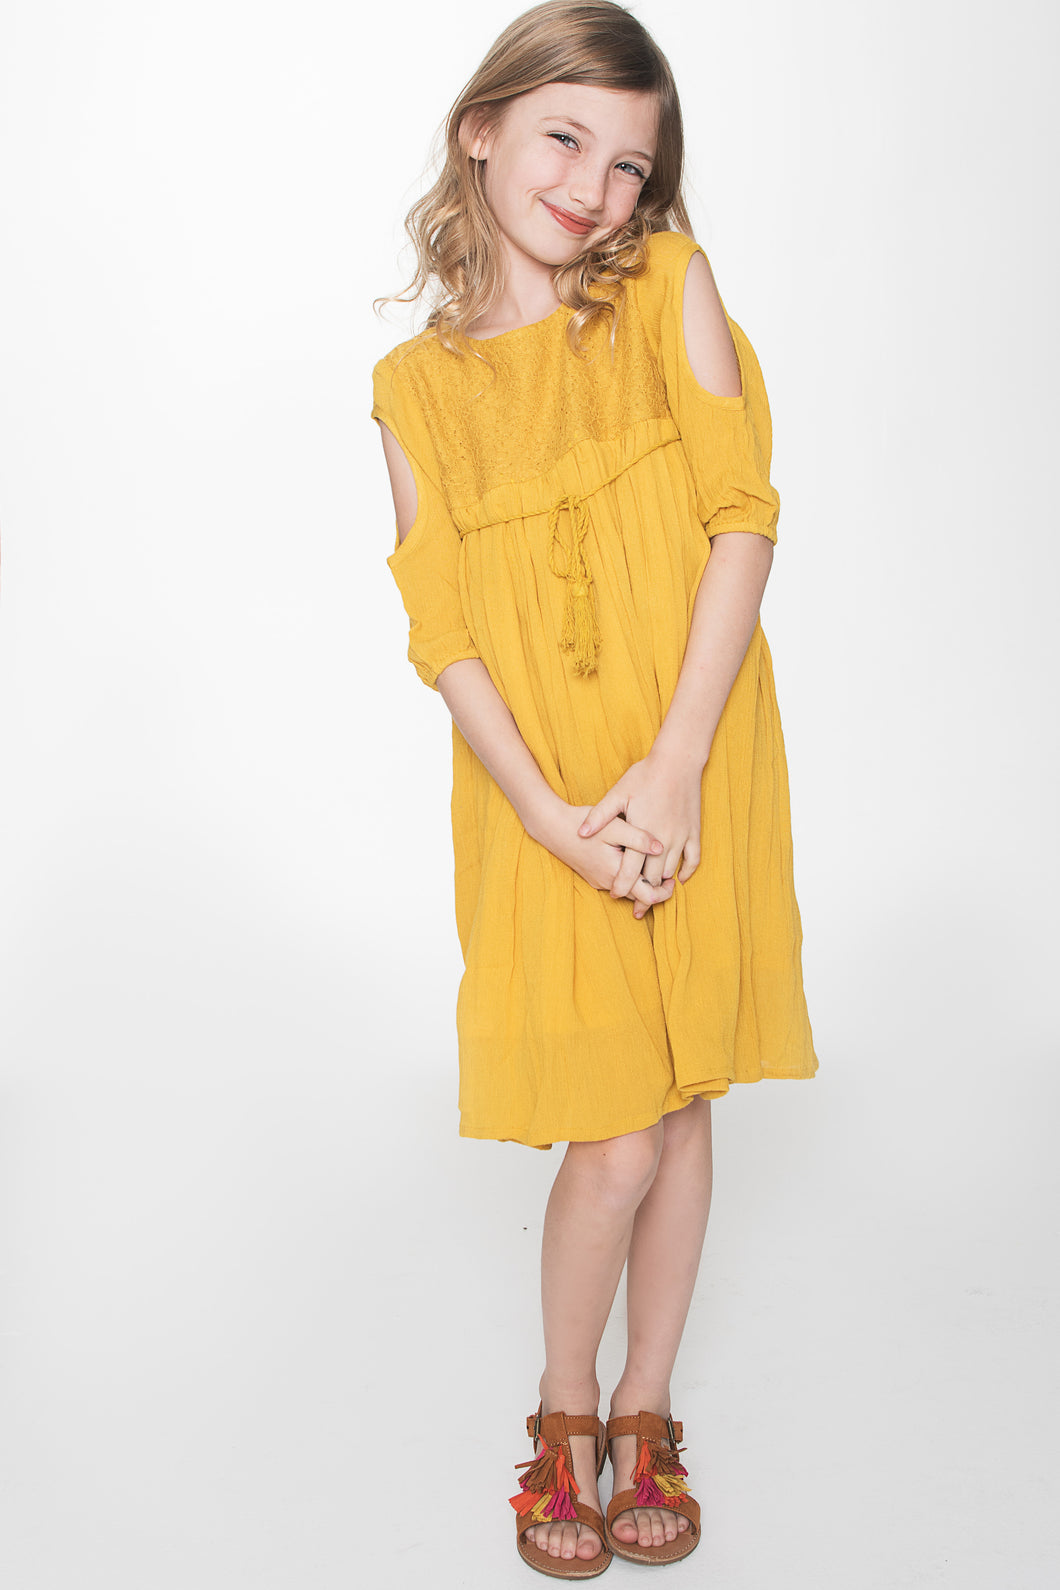 Mustard Yellow Lace Detail Cold Shoulder Dress - Kids Wholesale Boutique Clothing, Dress - Girls Dresses, Yo Baby Wholesale - Yo Baby